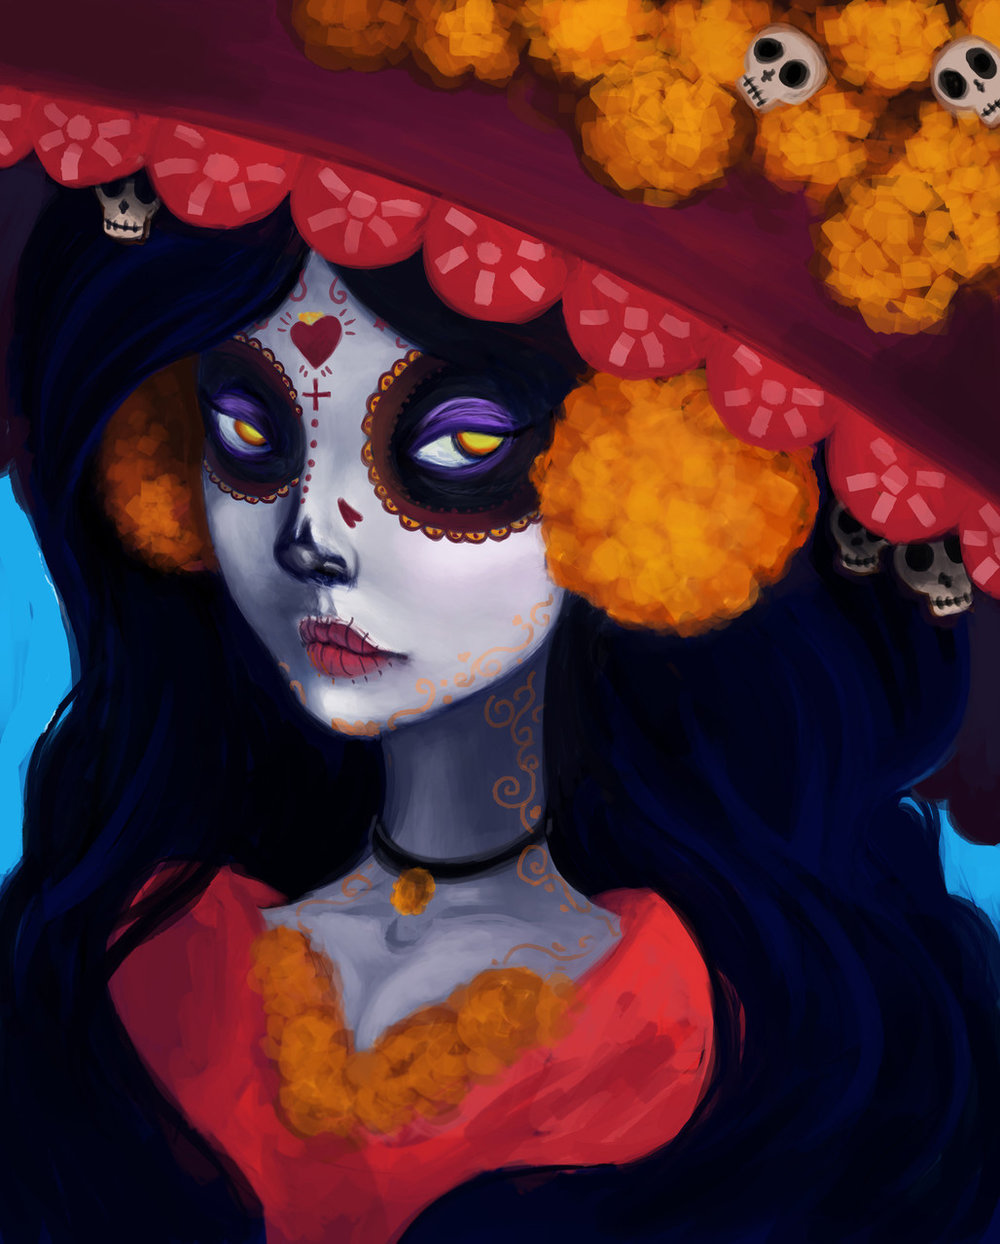 La Muerte (Saint Death) fanart Photoshop painting (2015) by Terea Cantu (IDEA20)